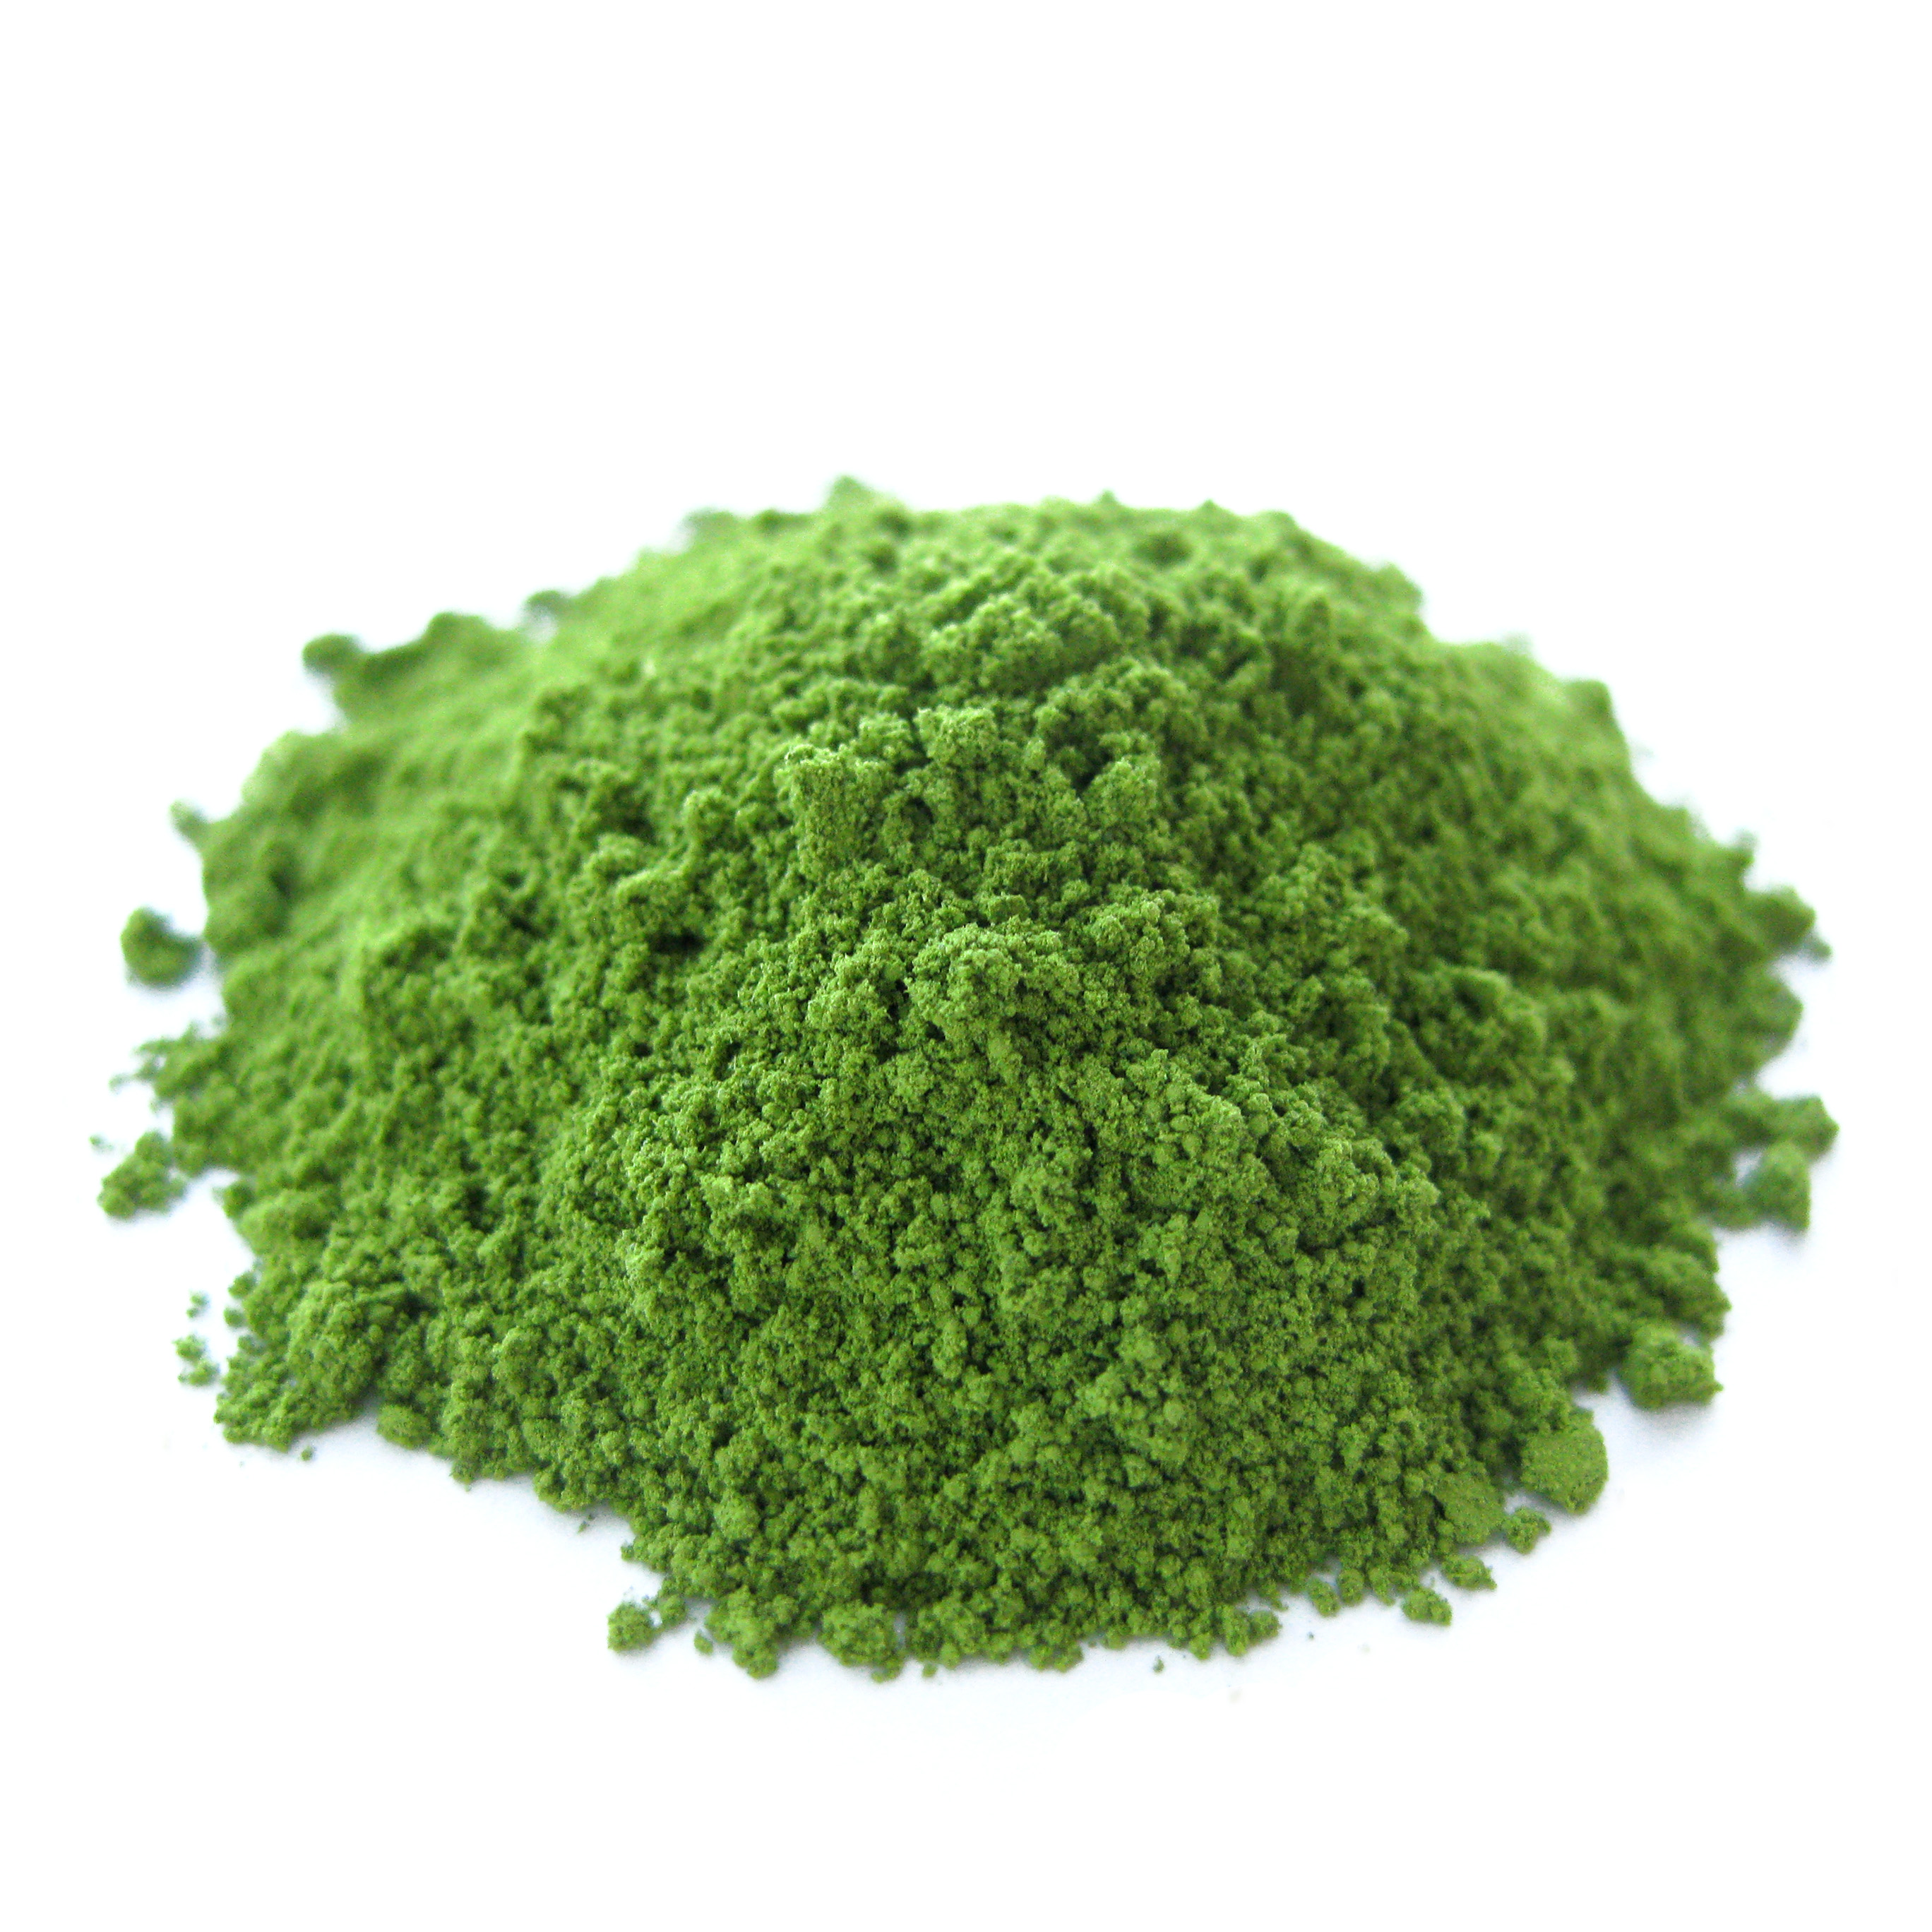 Global Matcha Market to garner exponential accruals by 2026 according to new research report:  AOI Tea, Mizuba Tea, DoMatcha,Sun Time